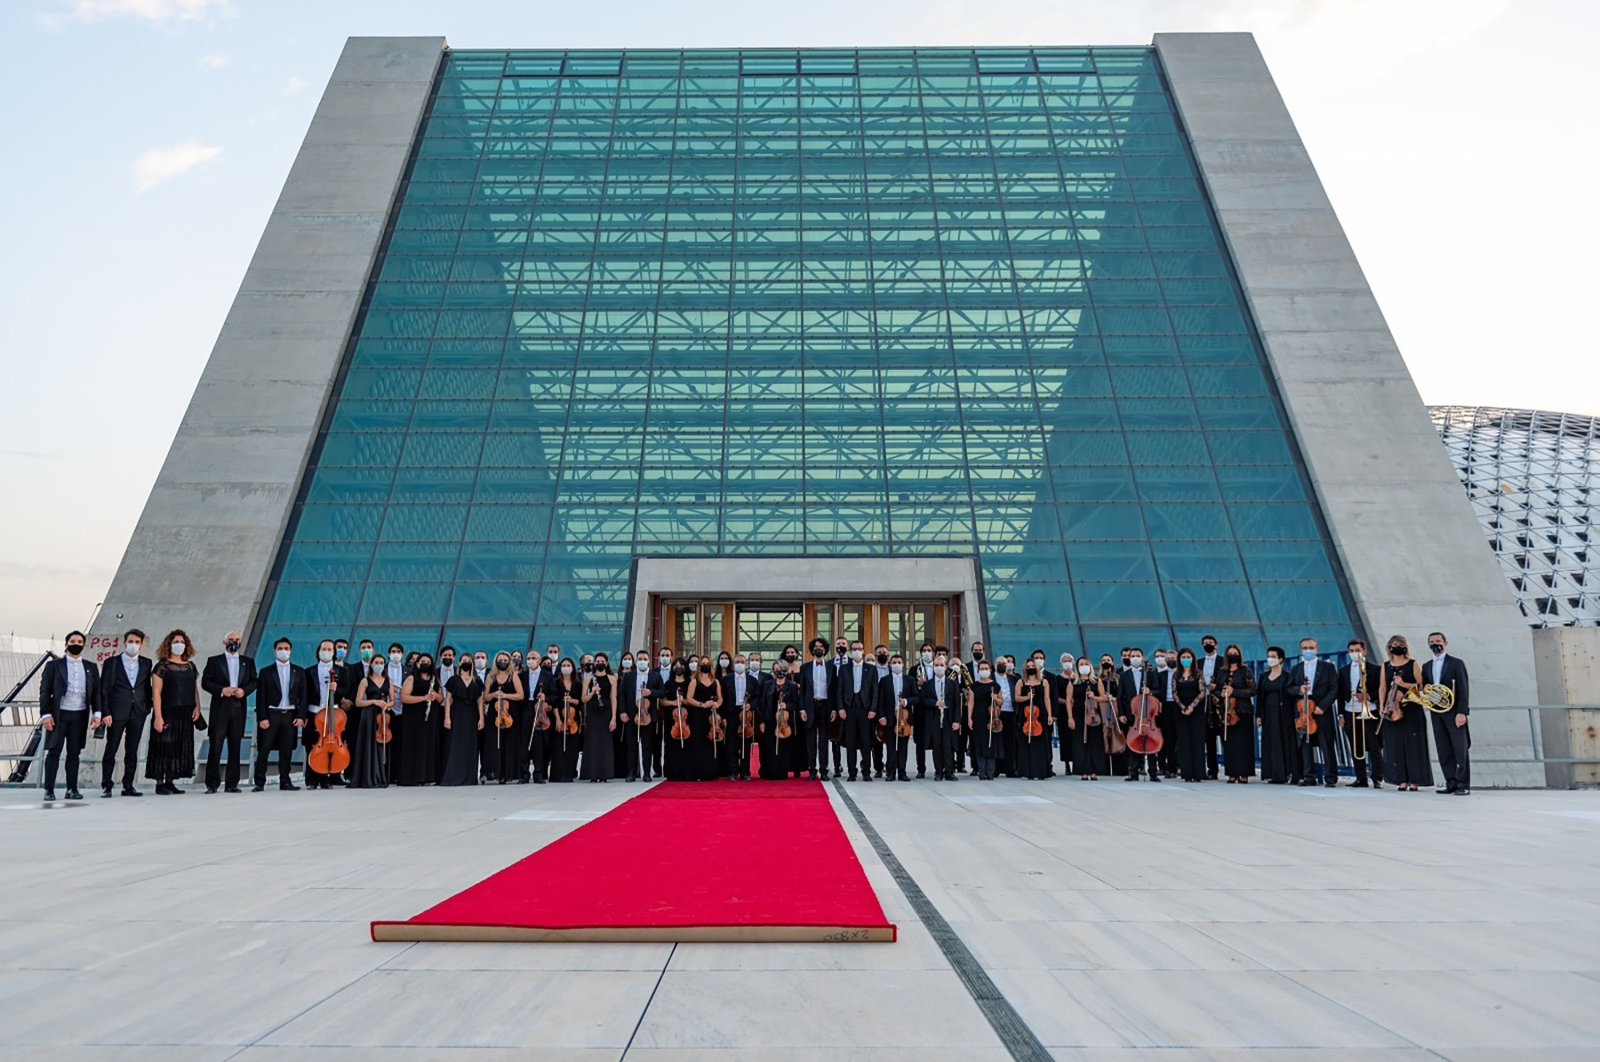 Members of the Presidential Symphony Orchestra stand in front of the new CSO building, Ankara, Turkey.